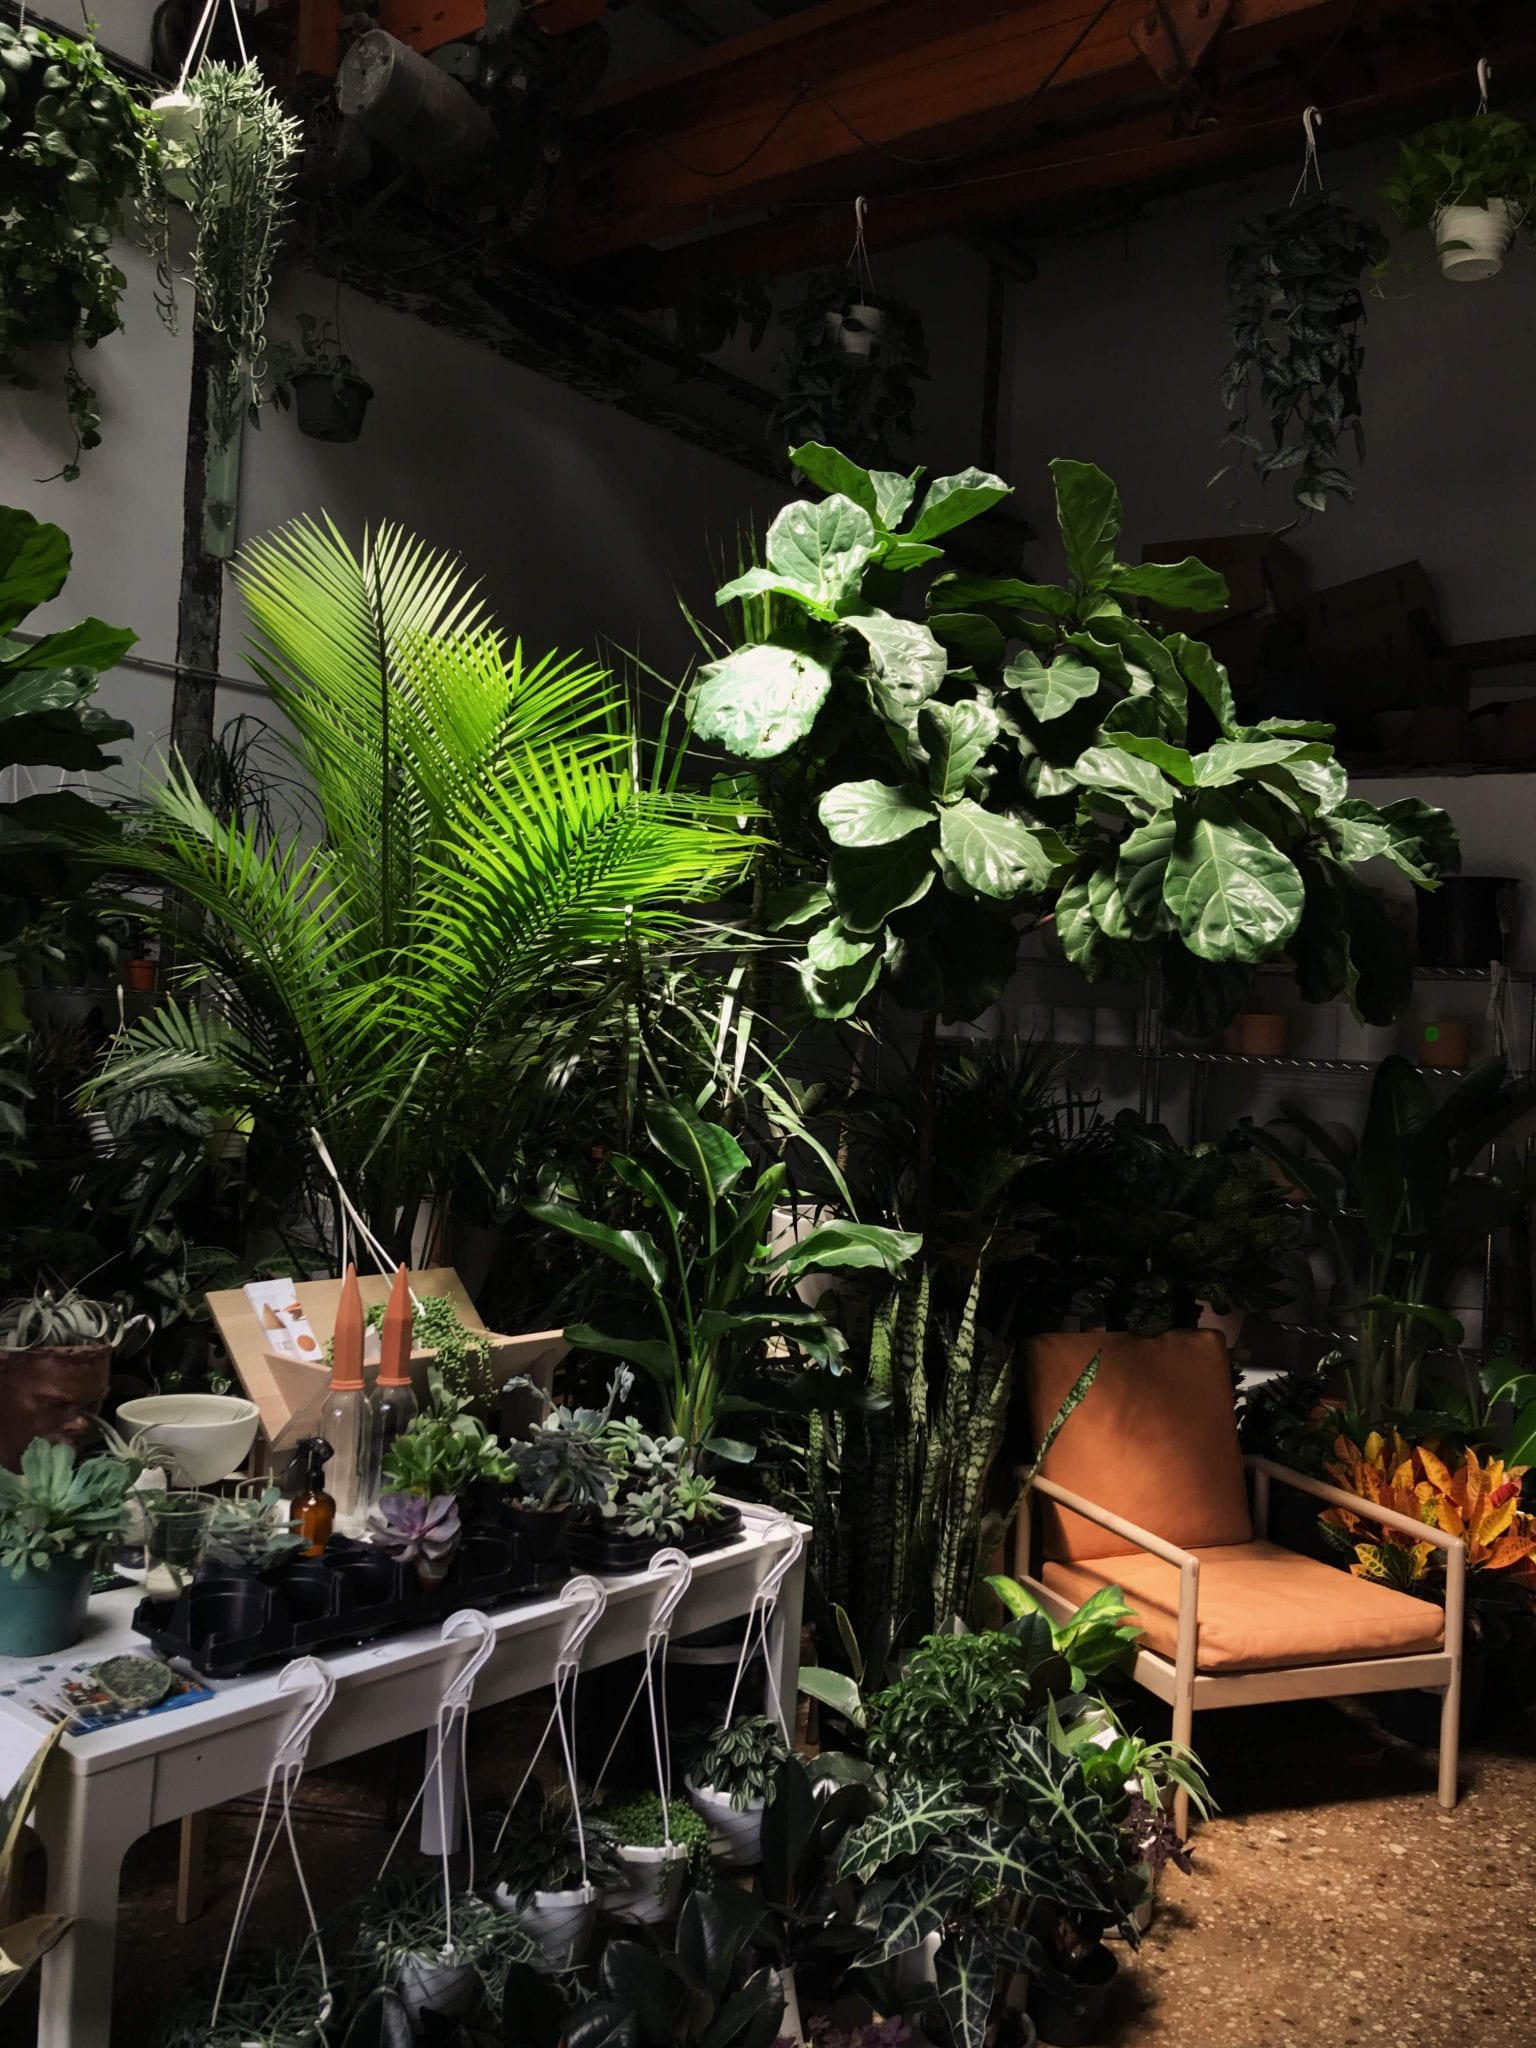 Houseplants improve air quality in your home